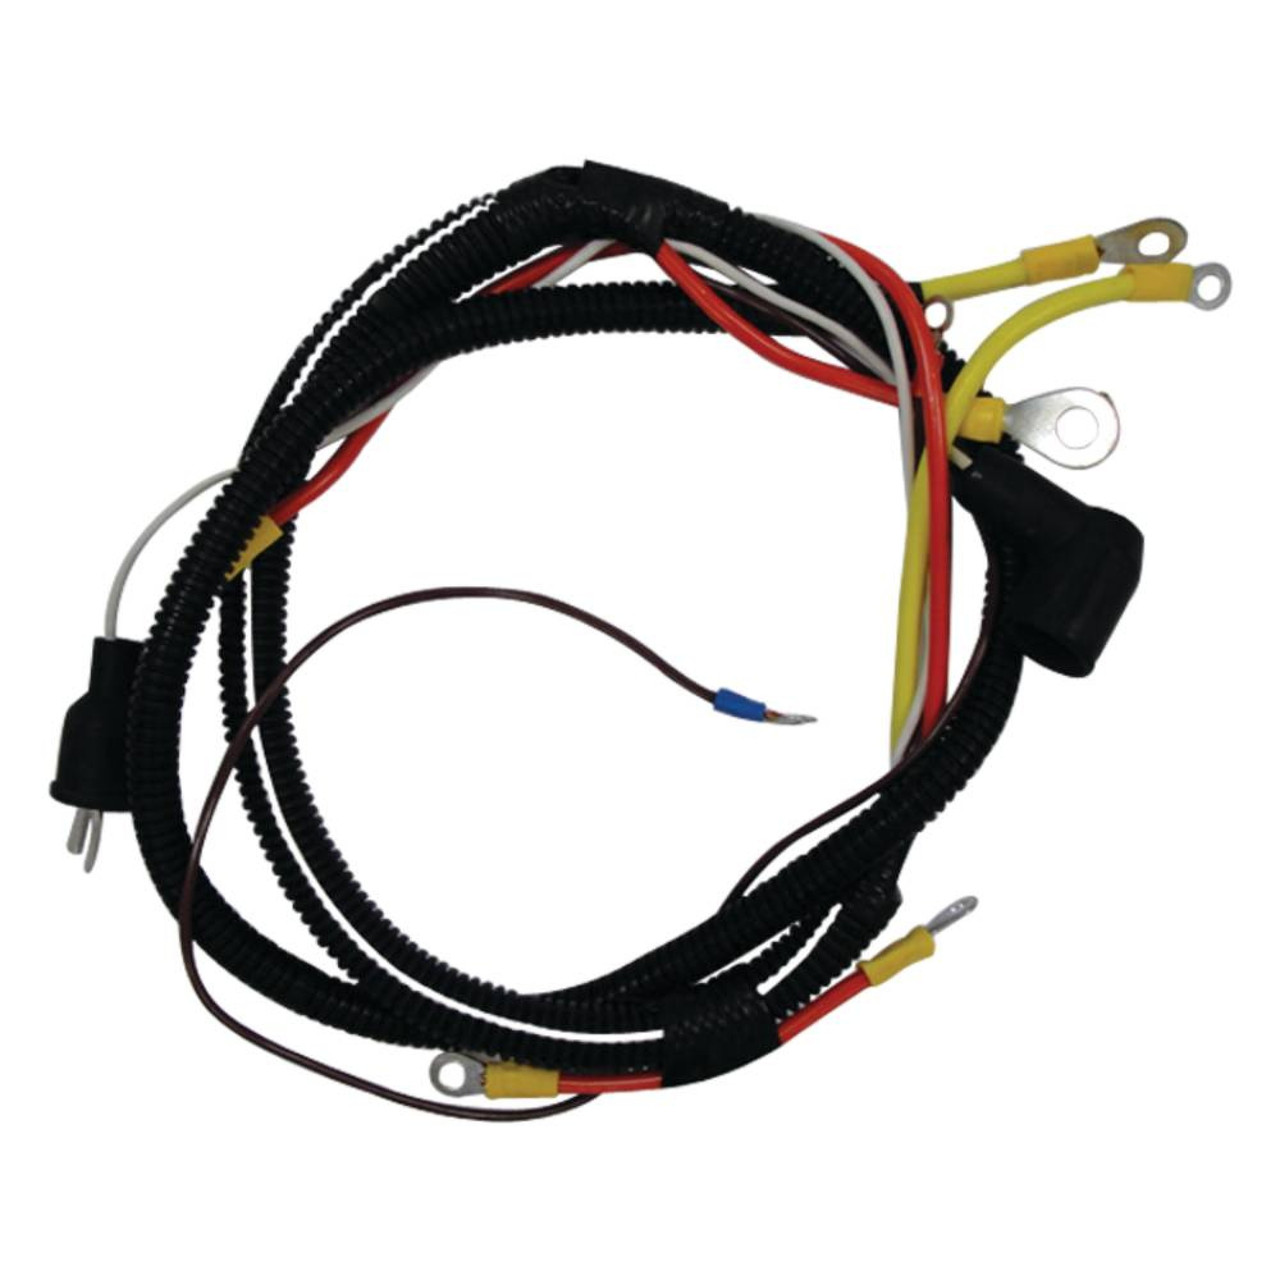 [DIAGRAM_34OR]  New Wiring Harness For Ford New Holland Naa, Jubilee - Complete Tractor | Ford Wiring Harness Parts |  | Complete Tractor